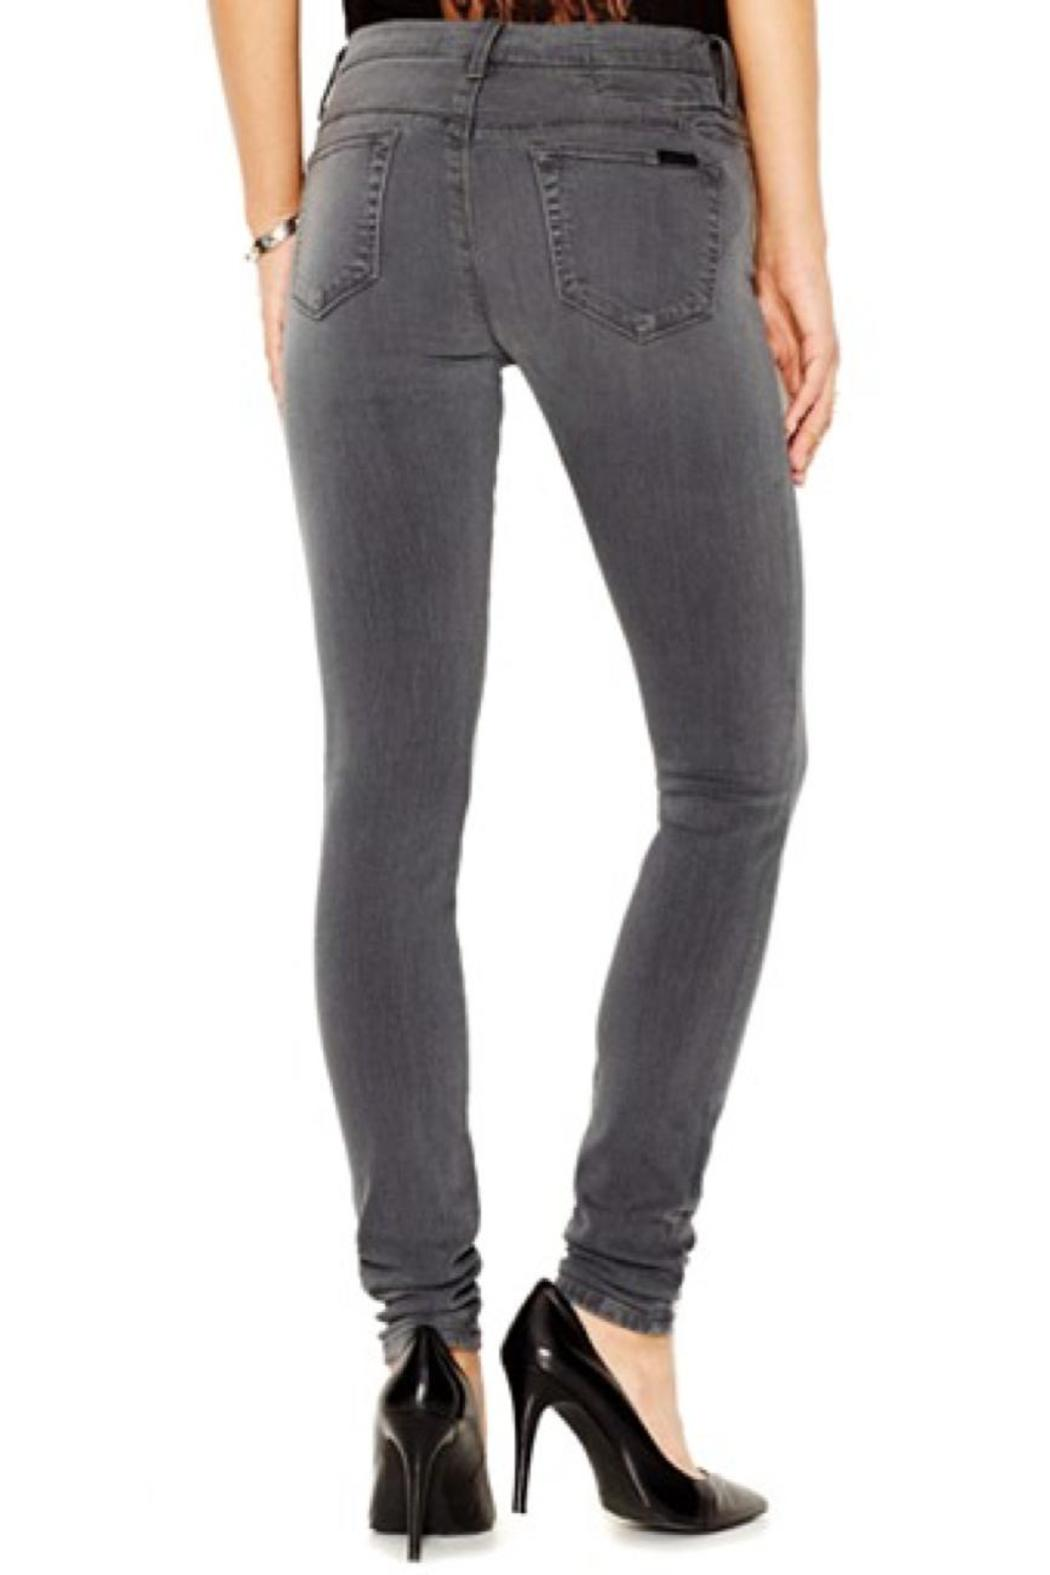 Joe&39s Jeans Hello Skinny Jeans from Toronto by La Boutique Noire